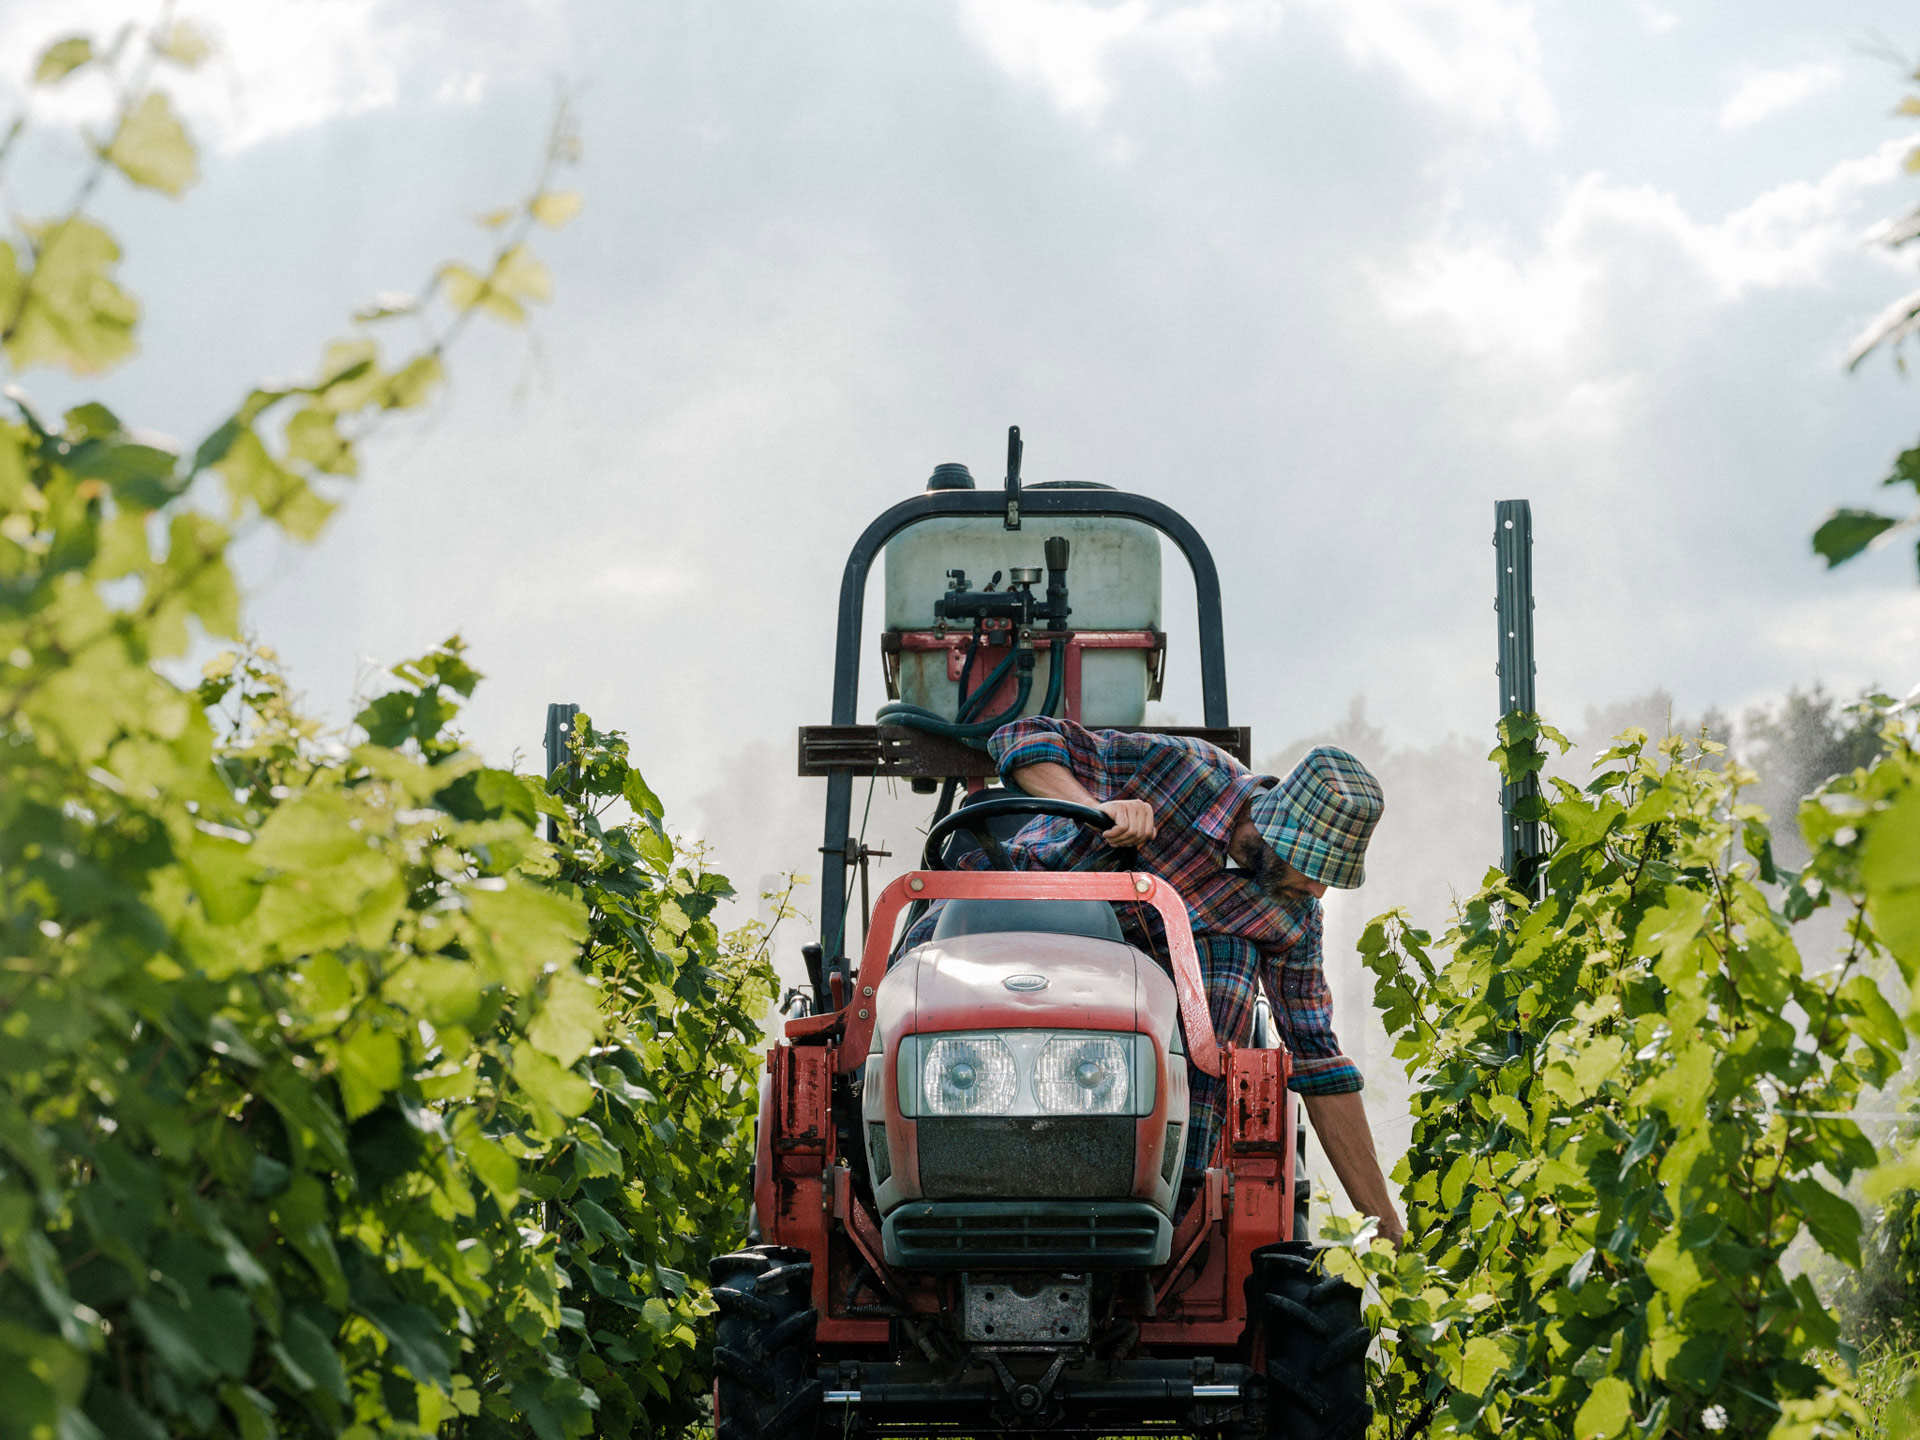 winemaker from Pinard & Filles driving his tractor and picking up grapes by Alexi Hobbs for Larose Paris